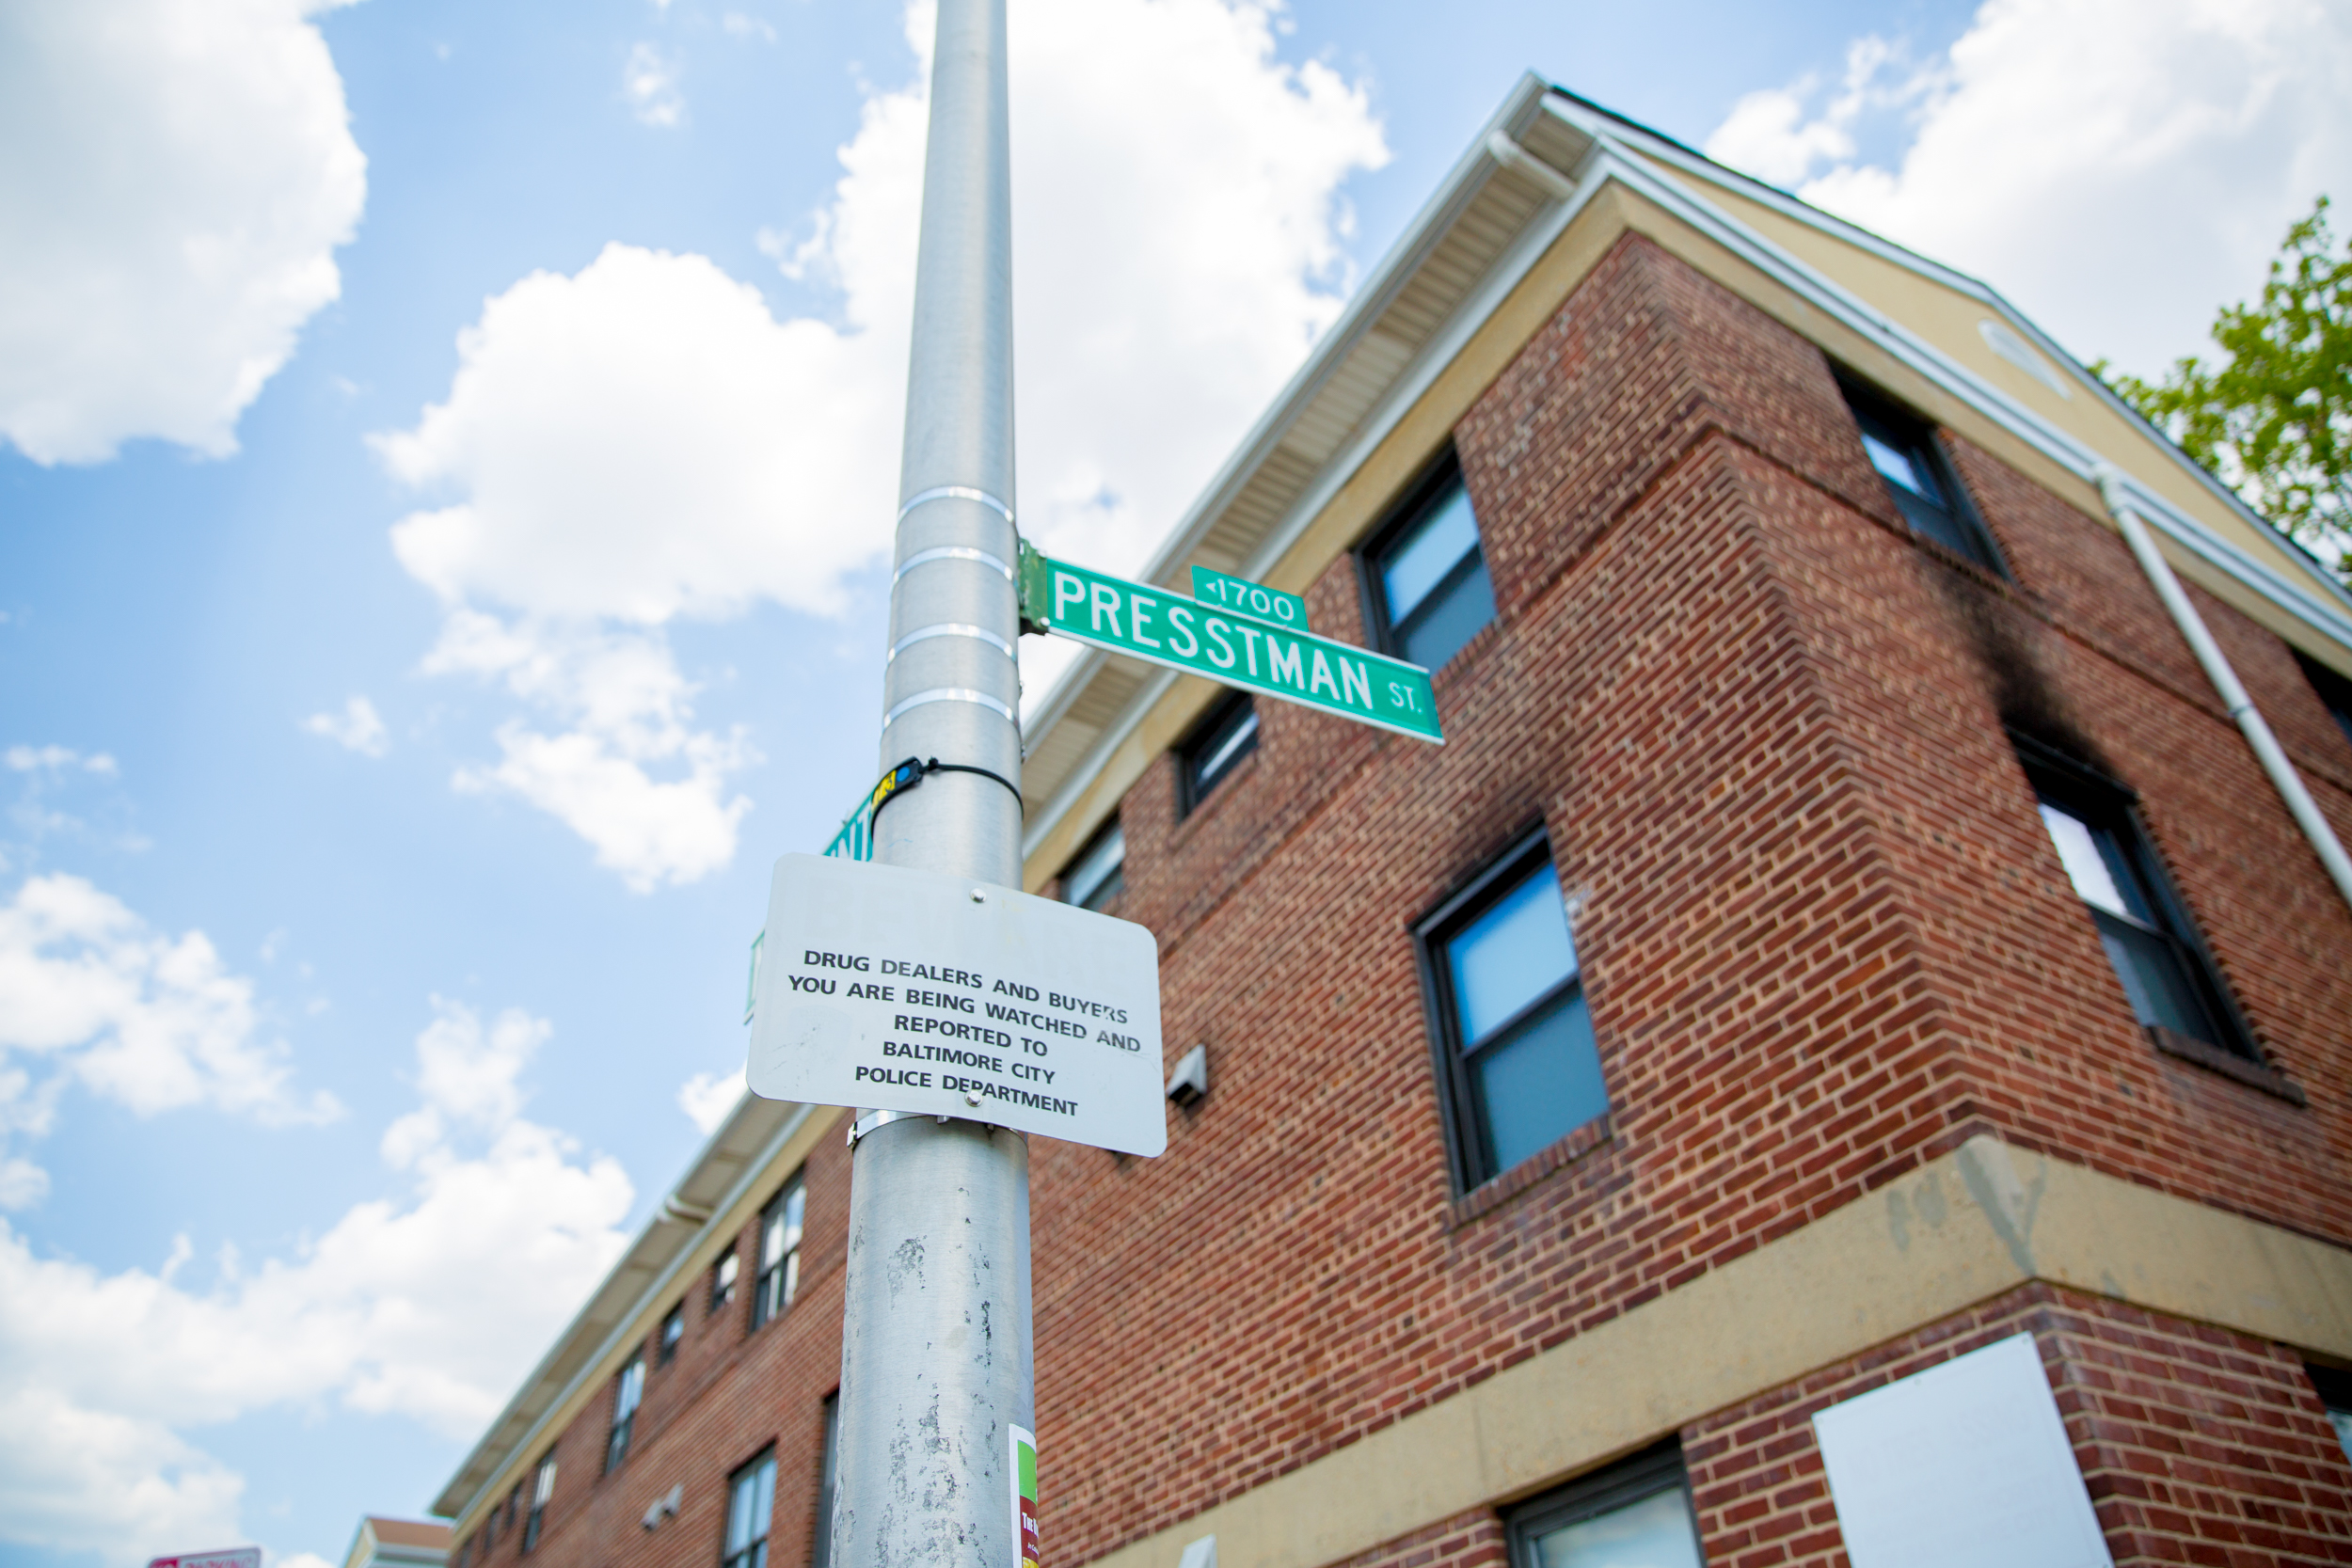 A street sign in the Sandtown neighborhood which Freddie Gray lived, and was arrested in. Baltimore, Maryland.